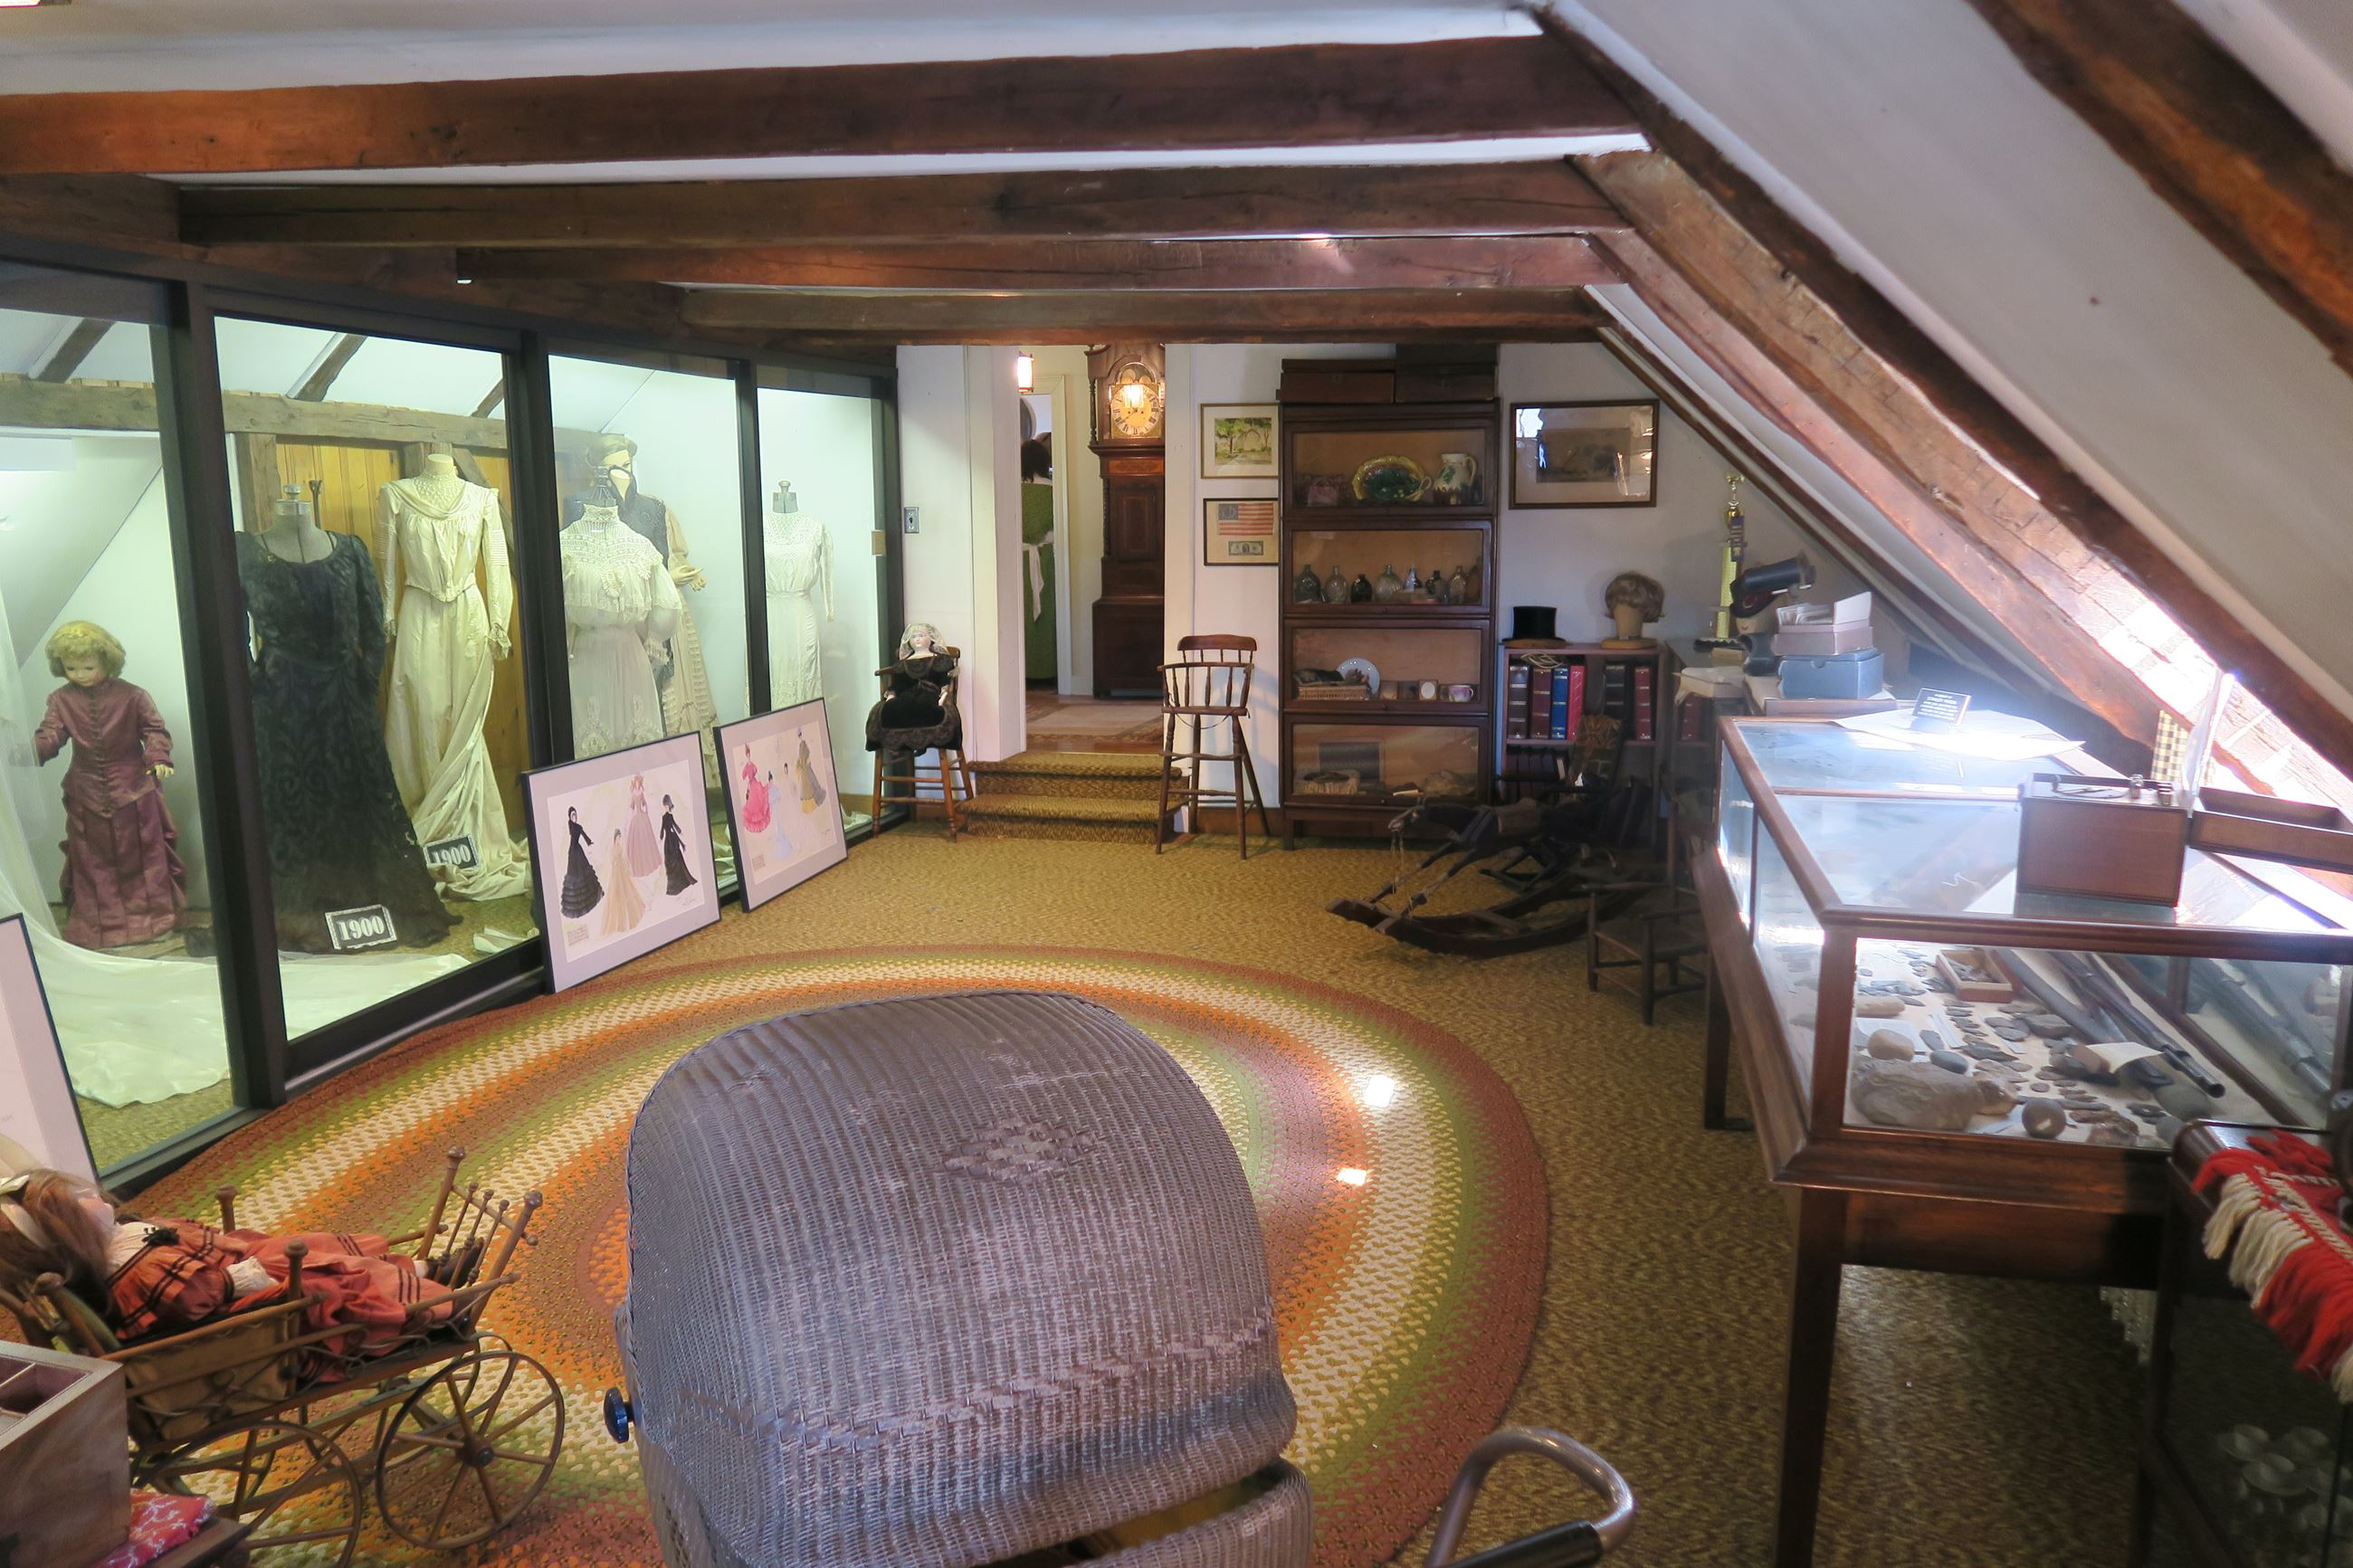 The Museum Room on the second floor of the Force Home houses a collection of wedding dresses from th